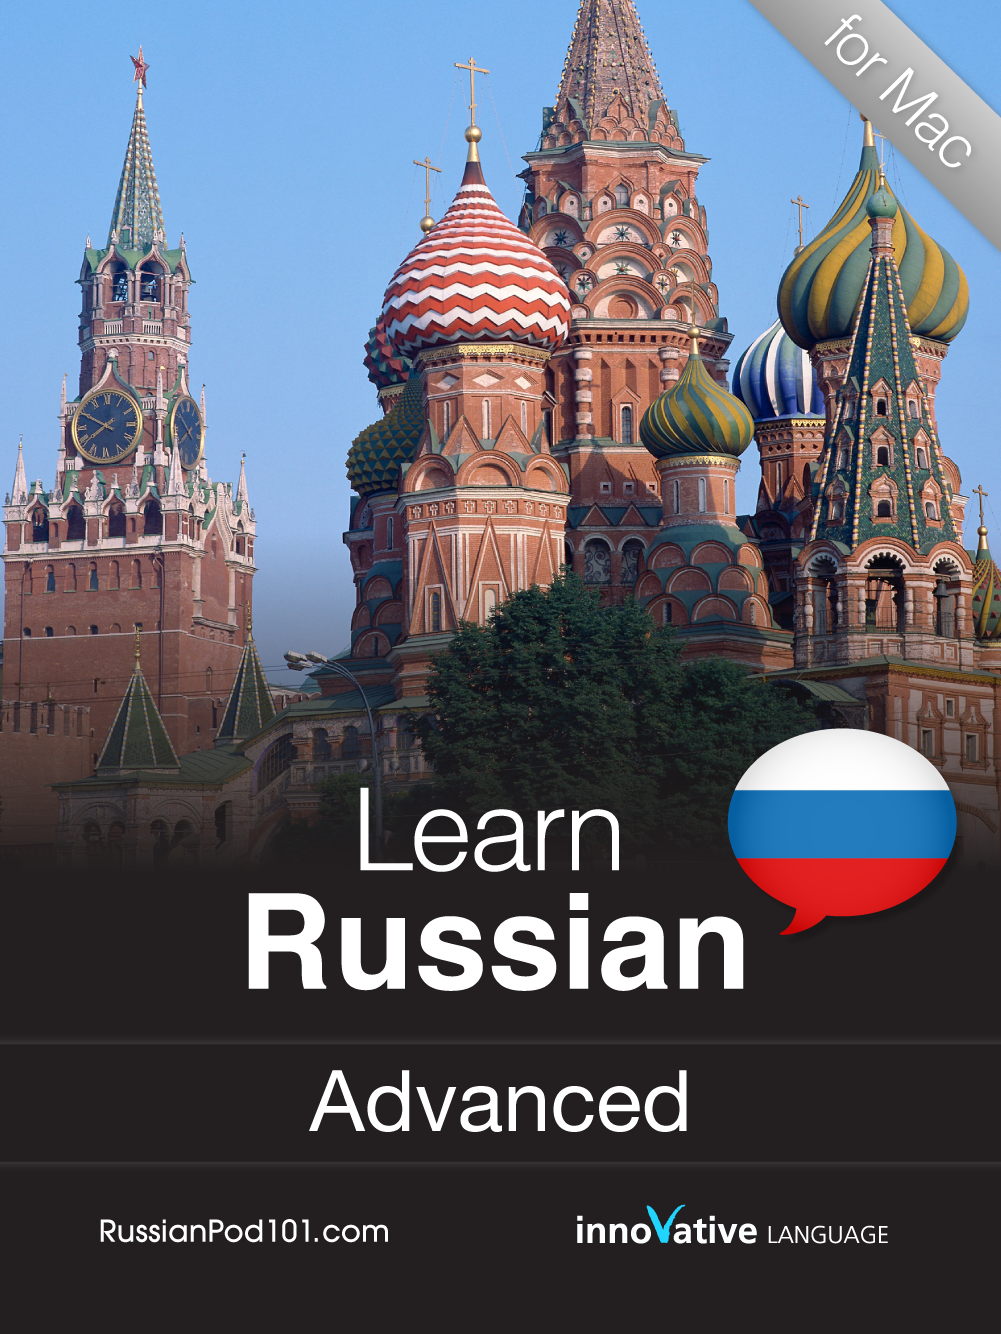 Learn Russian in just 5 minutes a day. For free.